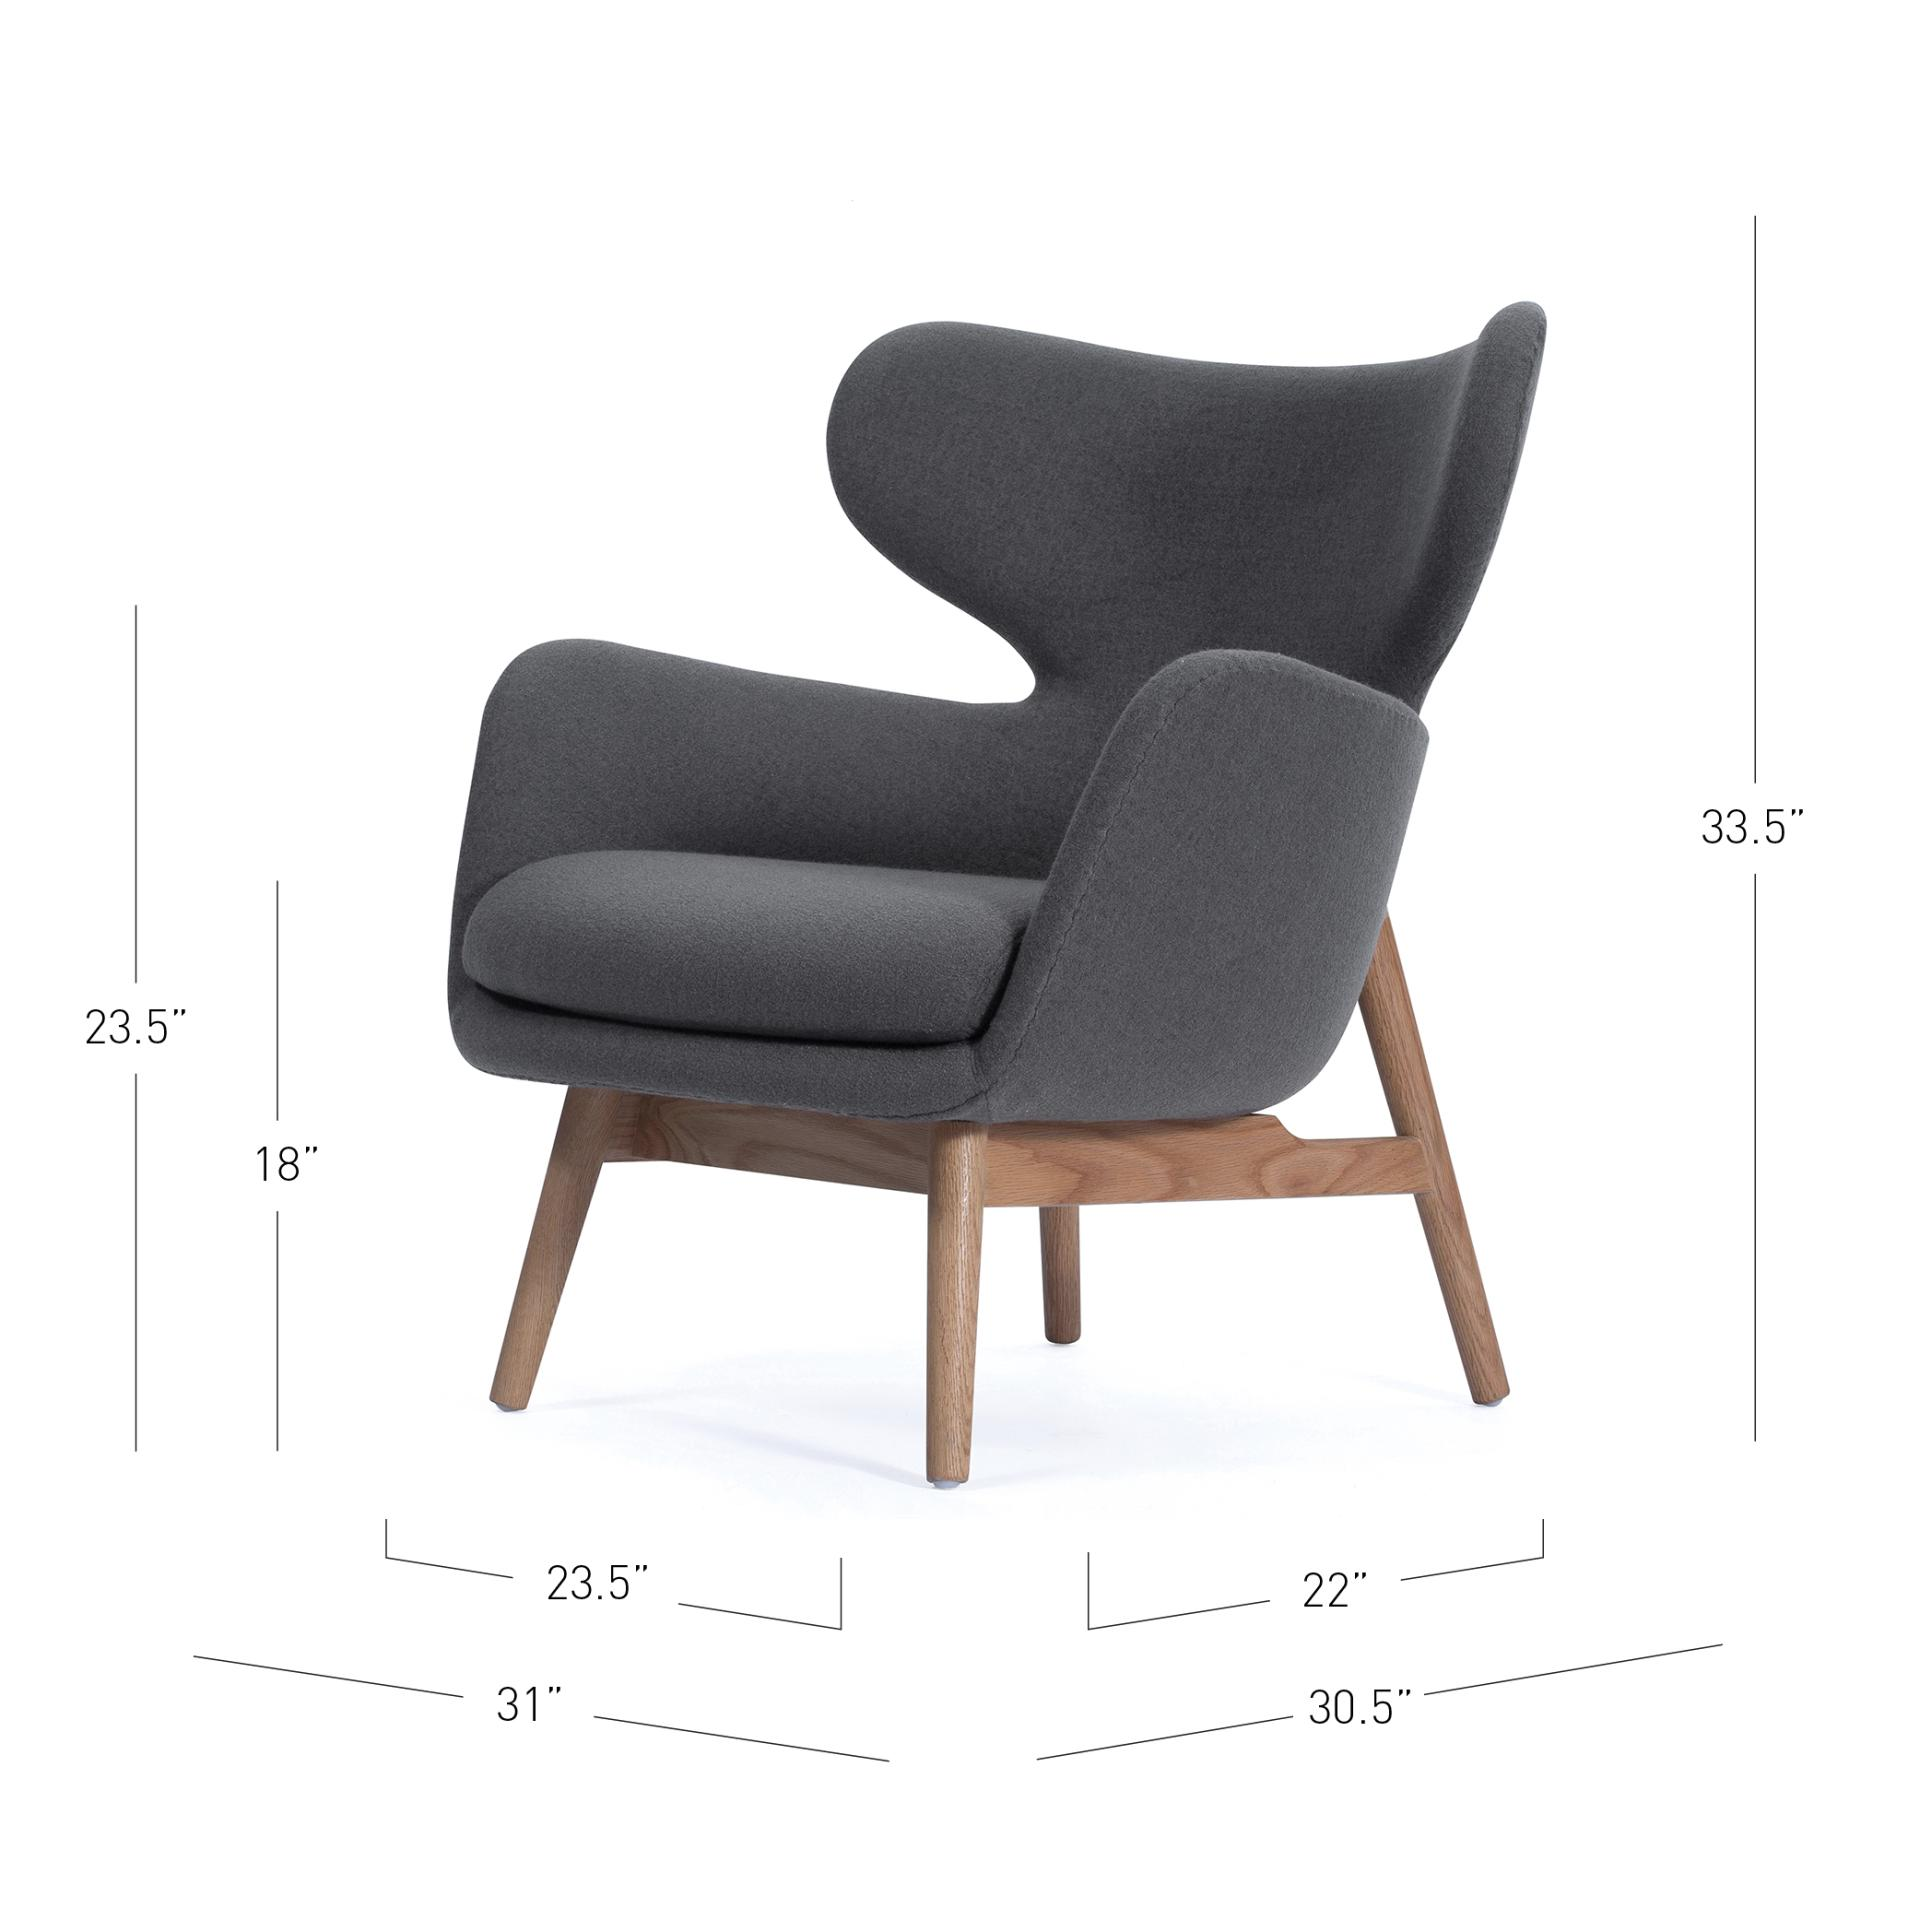 Super 1020003 195 Npd Home Furniture Wholesale Lifestyle Onthecornerstone Fun Painted Chair Ideas Images Onthecornerstoneorg